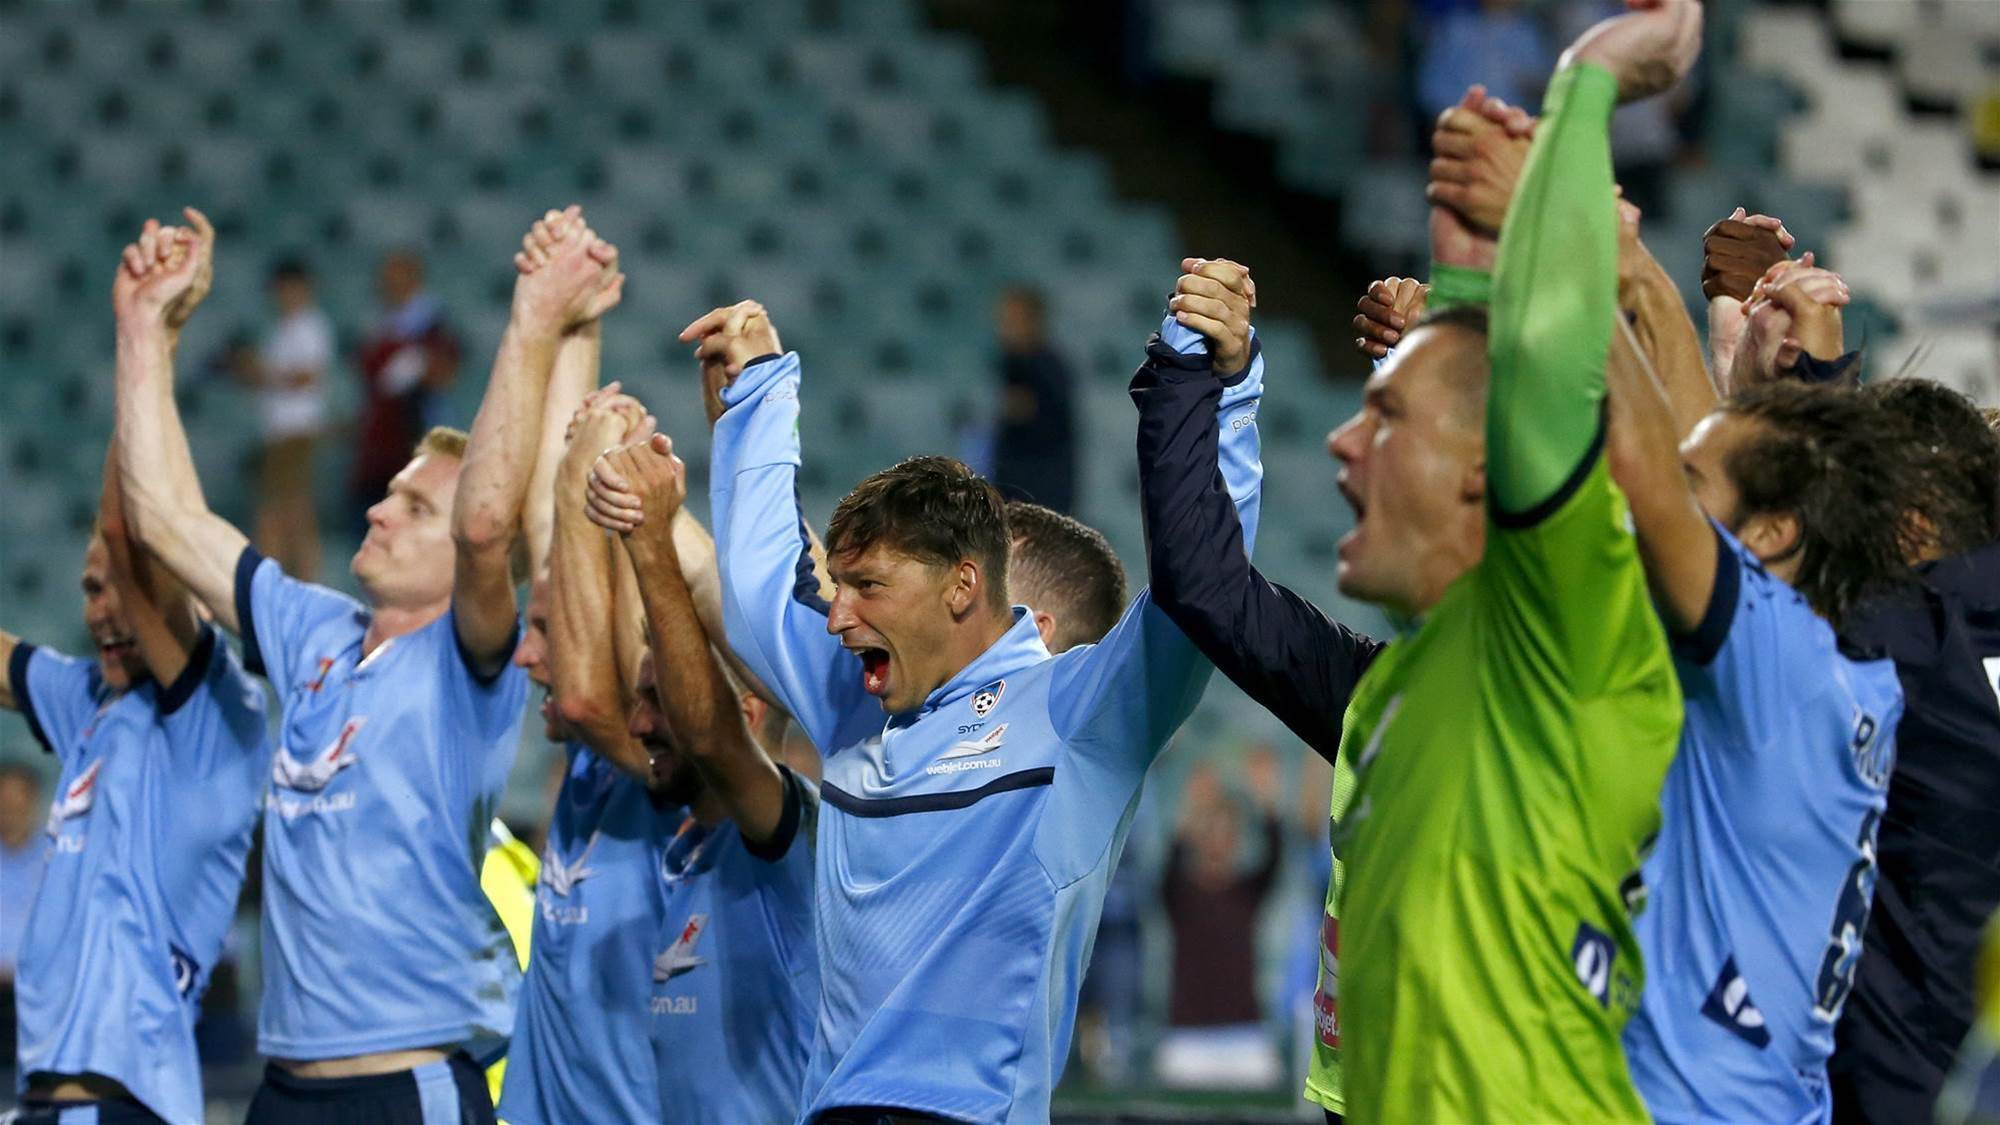 Sydney have 'mental advantage' over Victory - Arnie